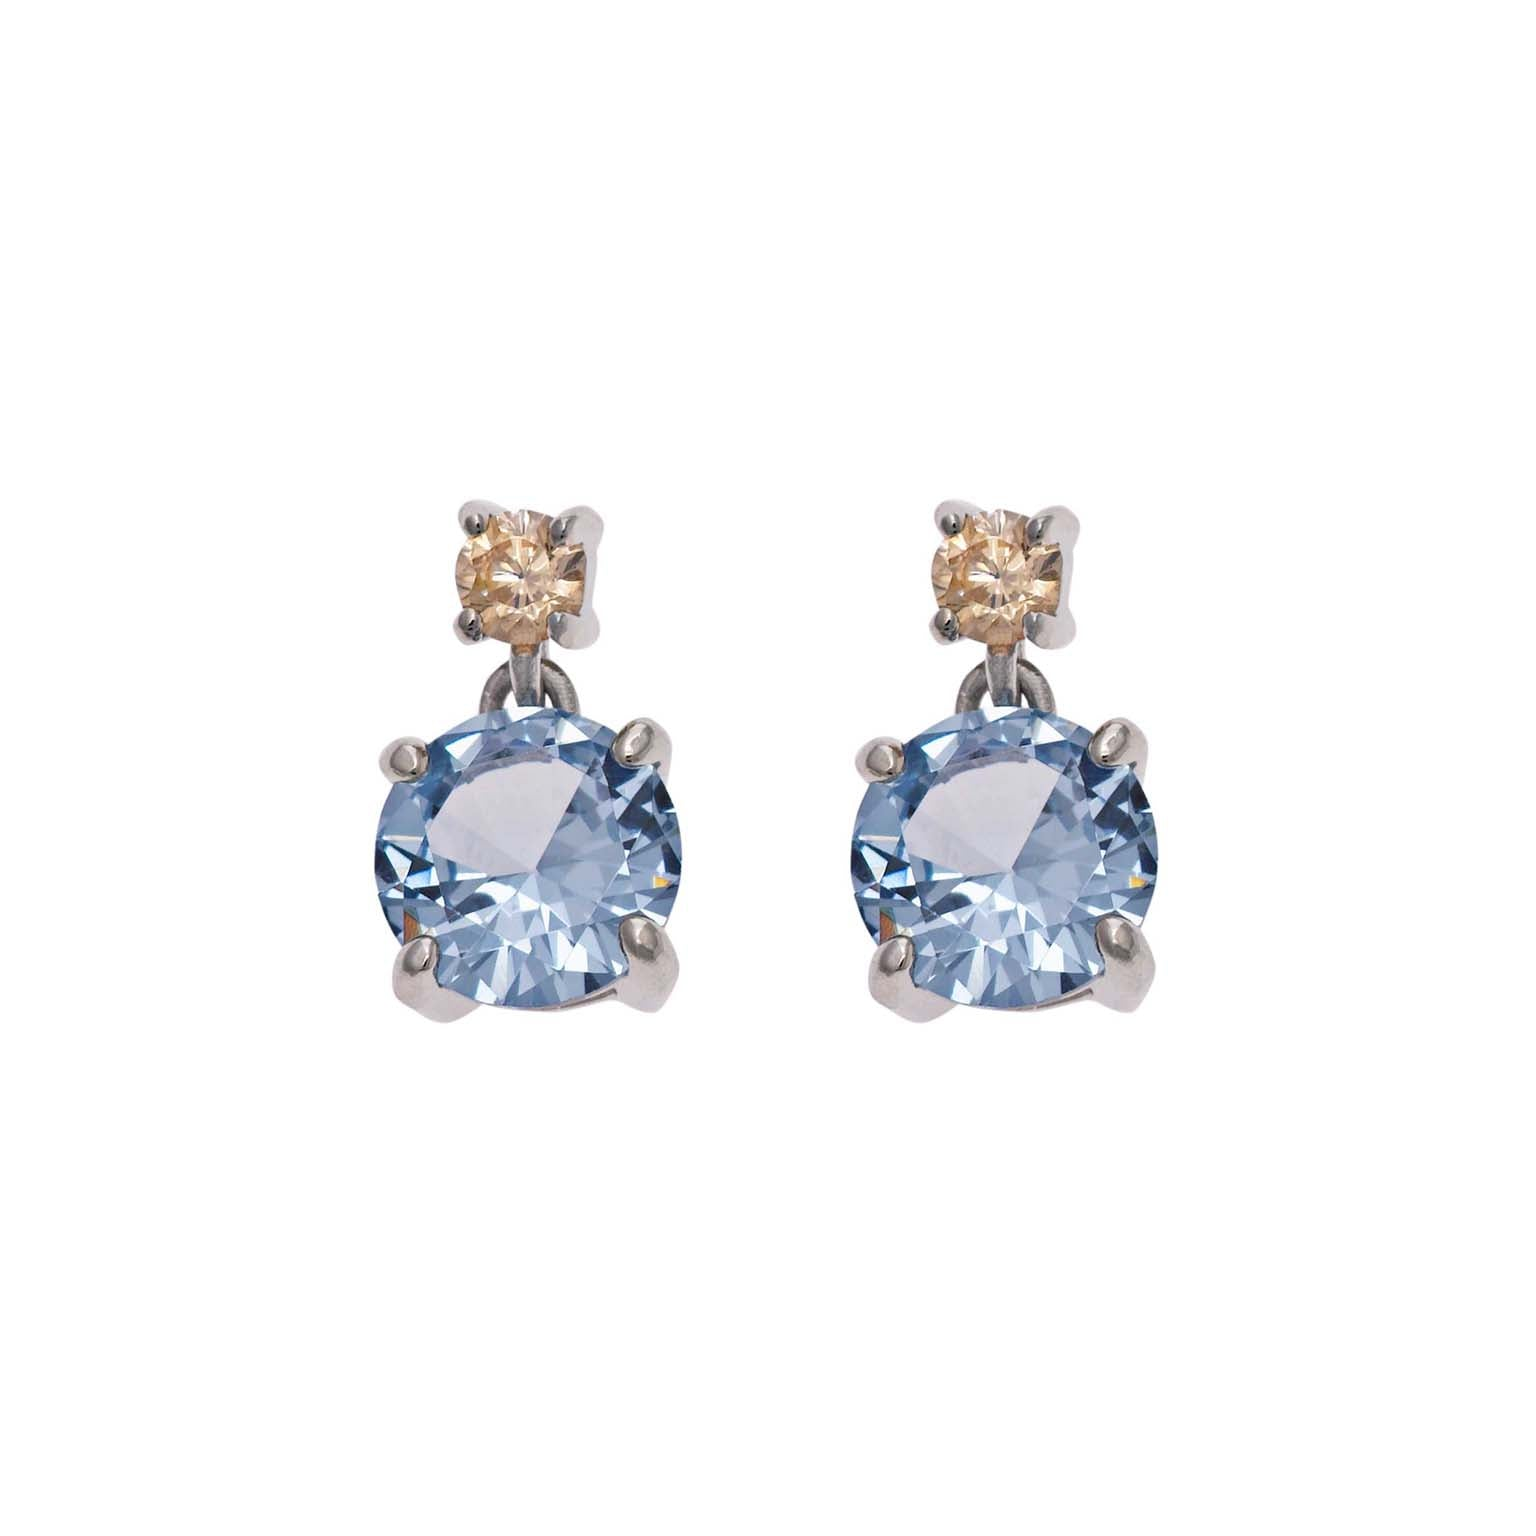 DROP EARRINGS WITH SKY BLUE & CHAMPAGNE SPINEL - china-cabinet.com